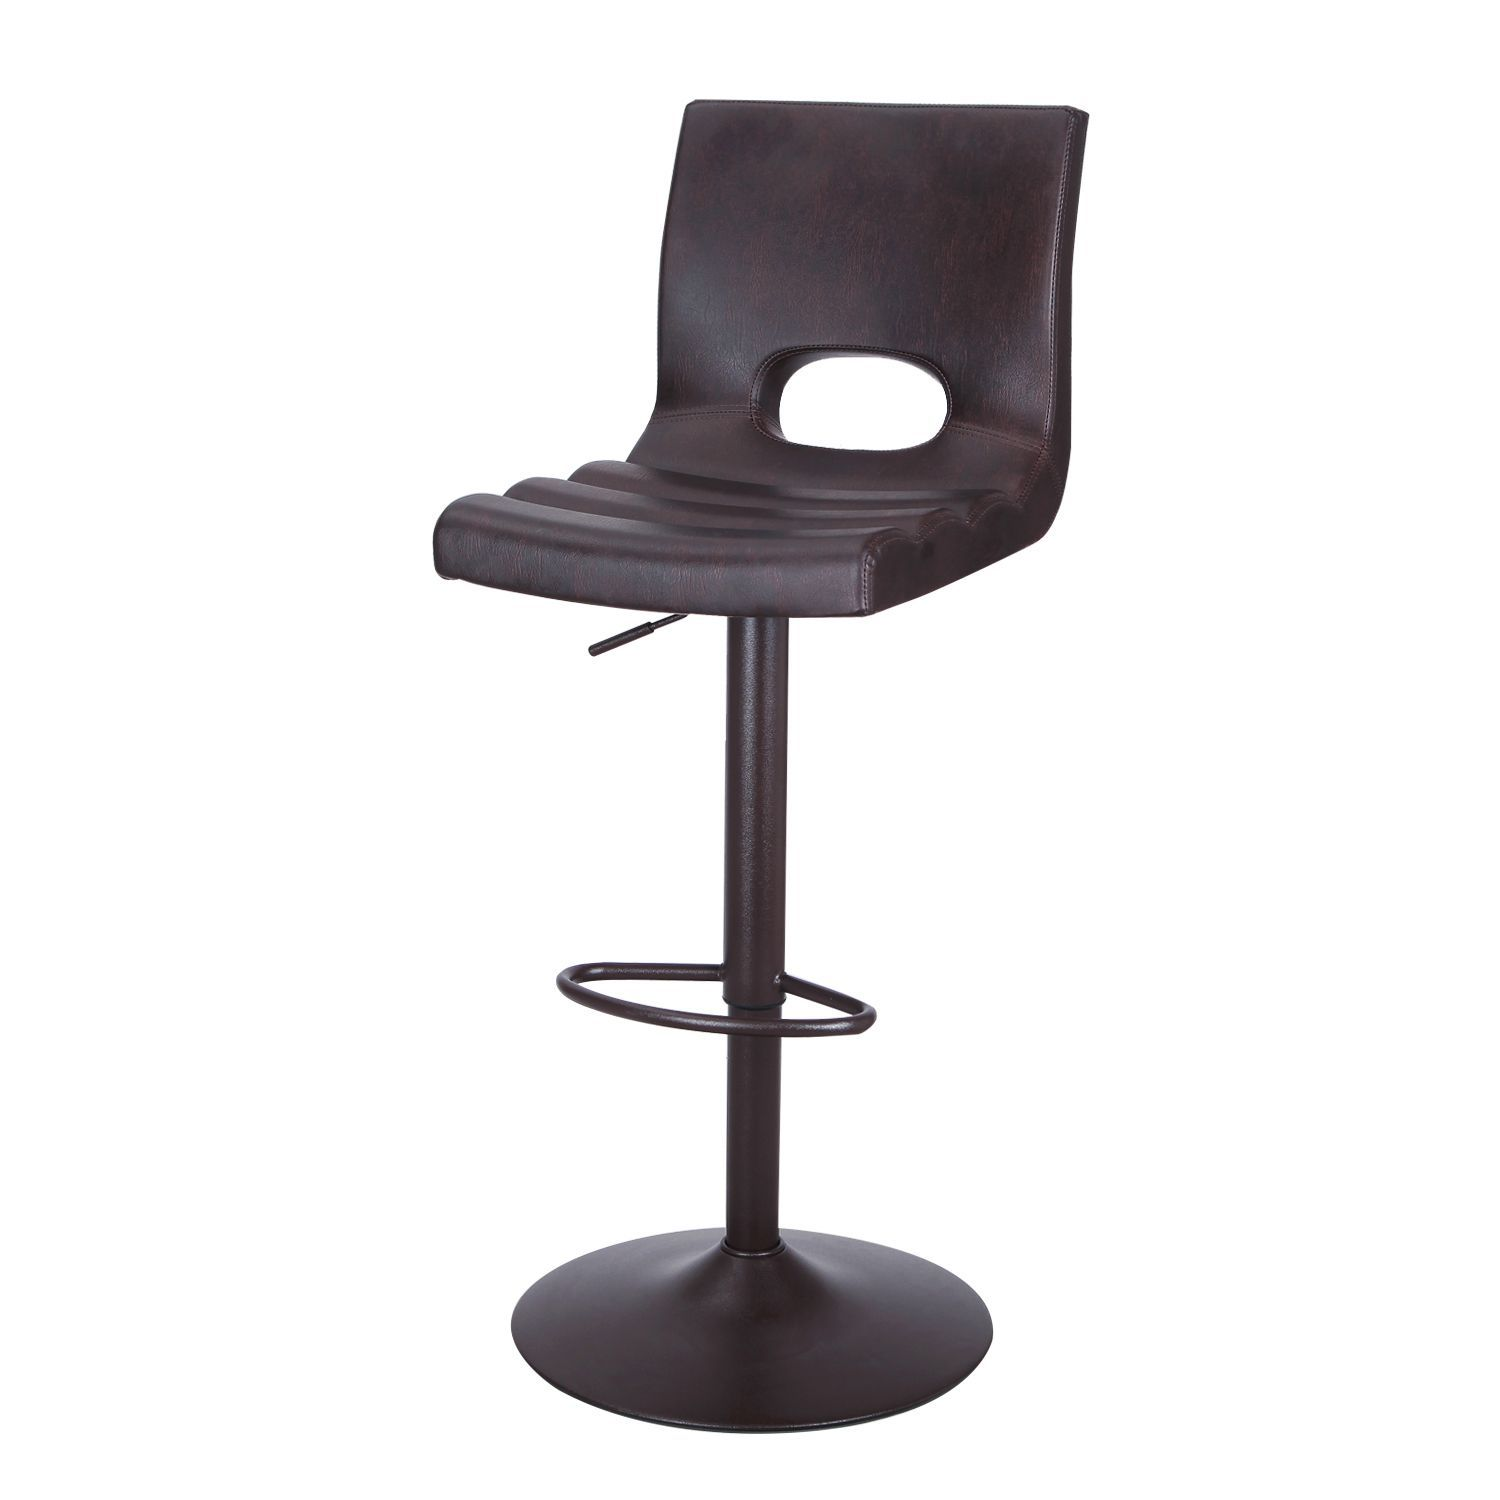 Adeco Adjustable Hydraulic Bar Stools Low Back Accent Chair Brown